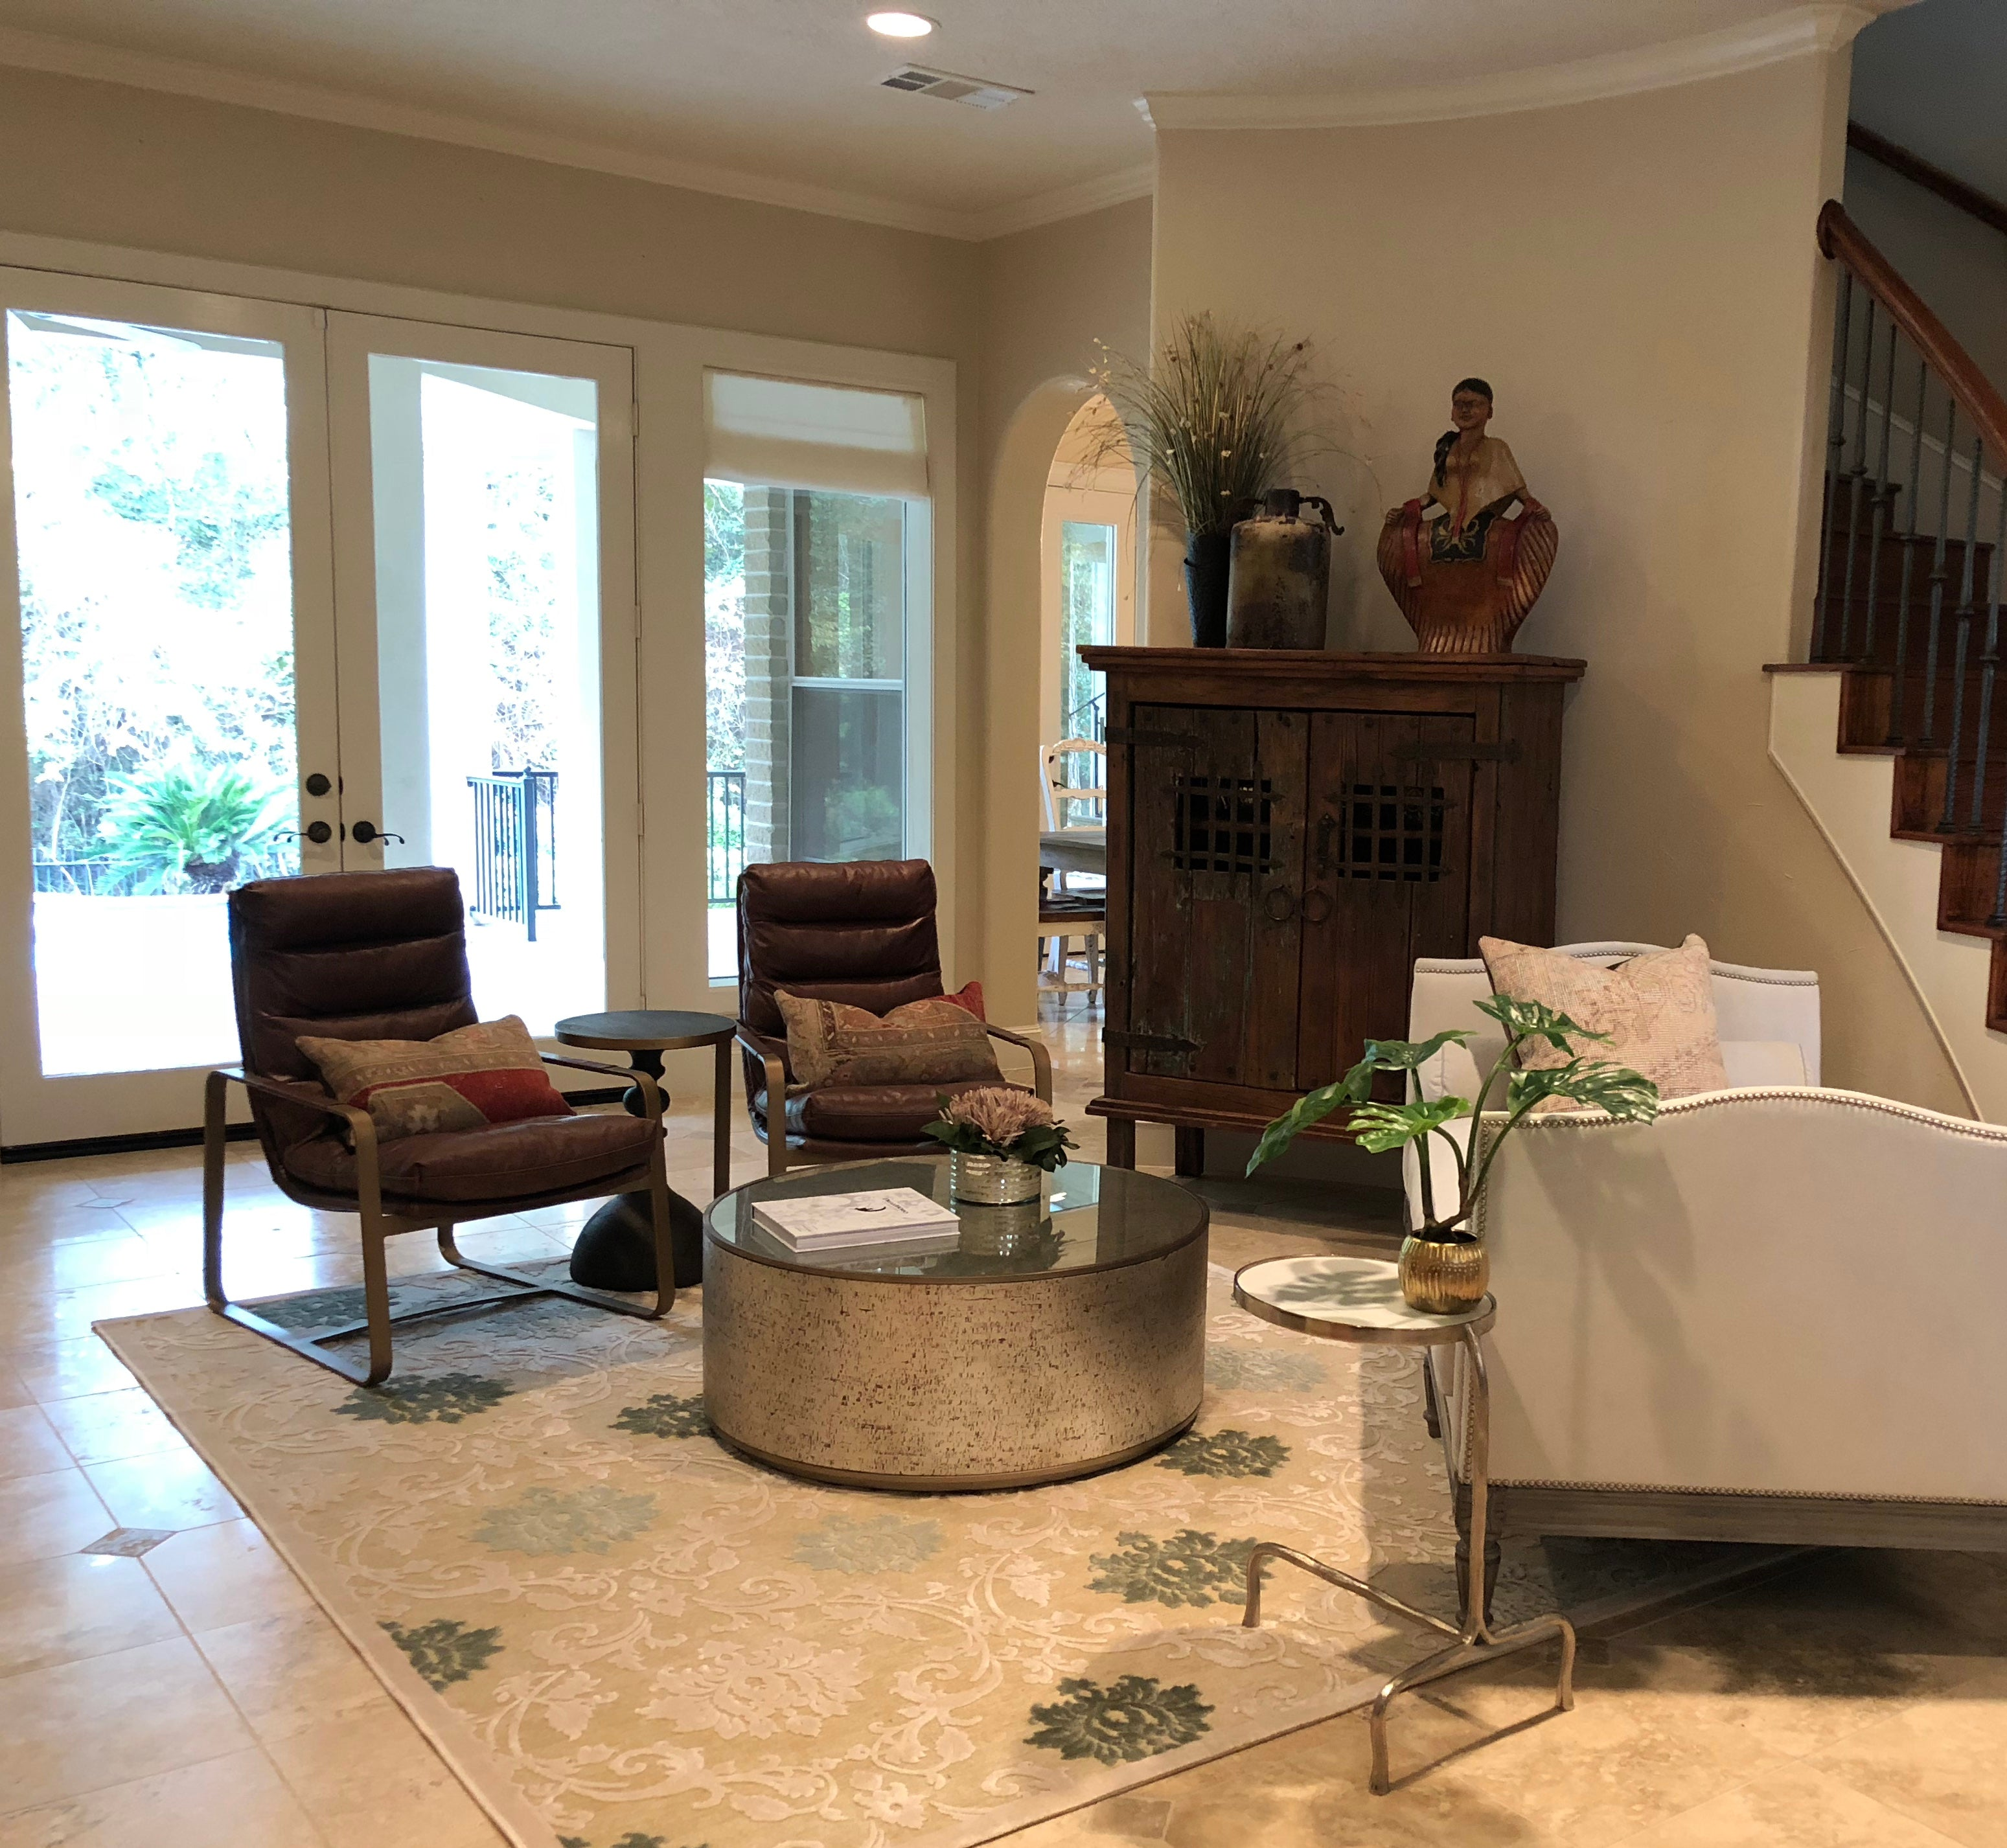 Donna_s_Home_Furnishings_Conroe_Henry_Palma_Interior_Design_Curated_Life_1706.jpeg